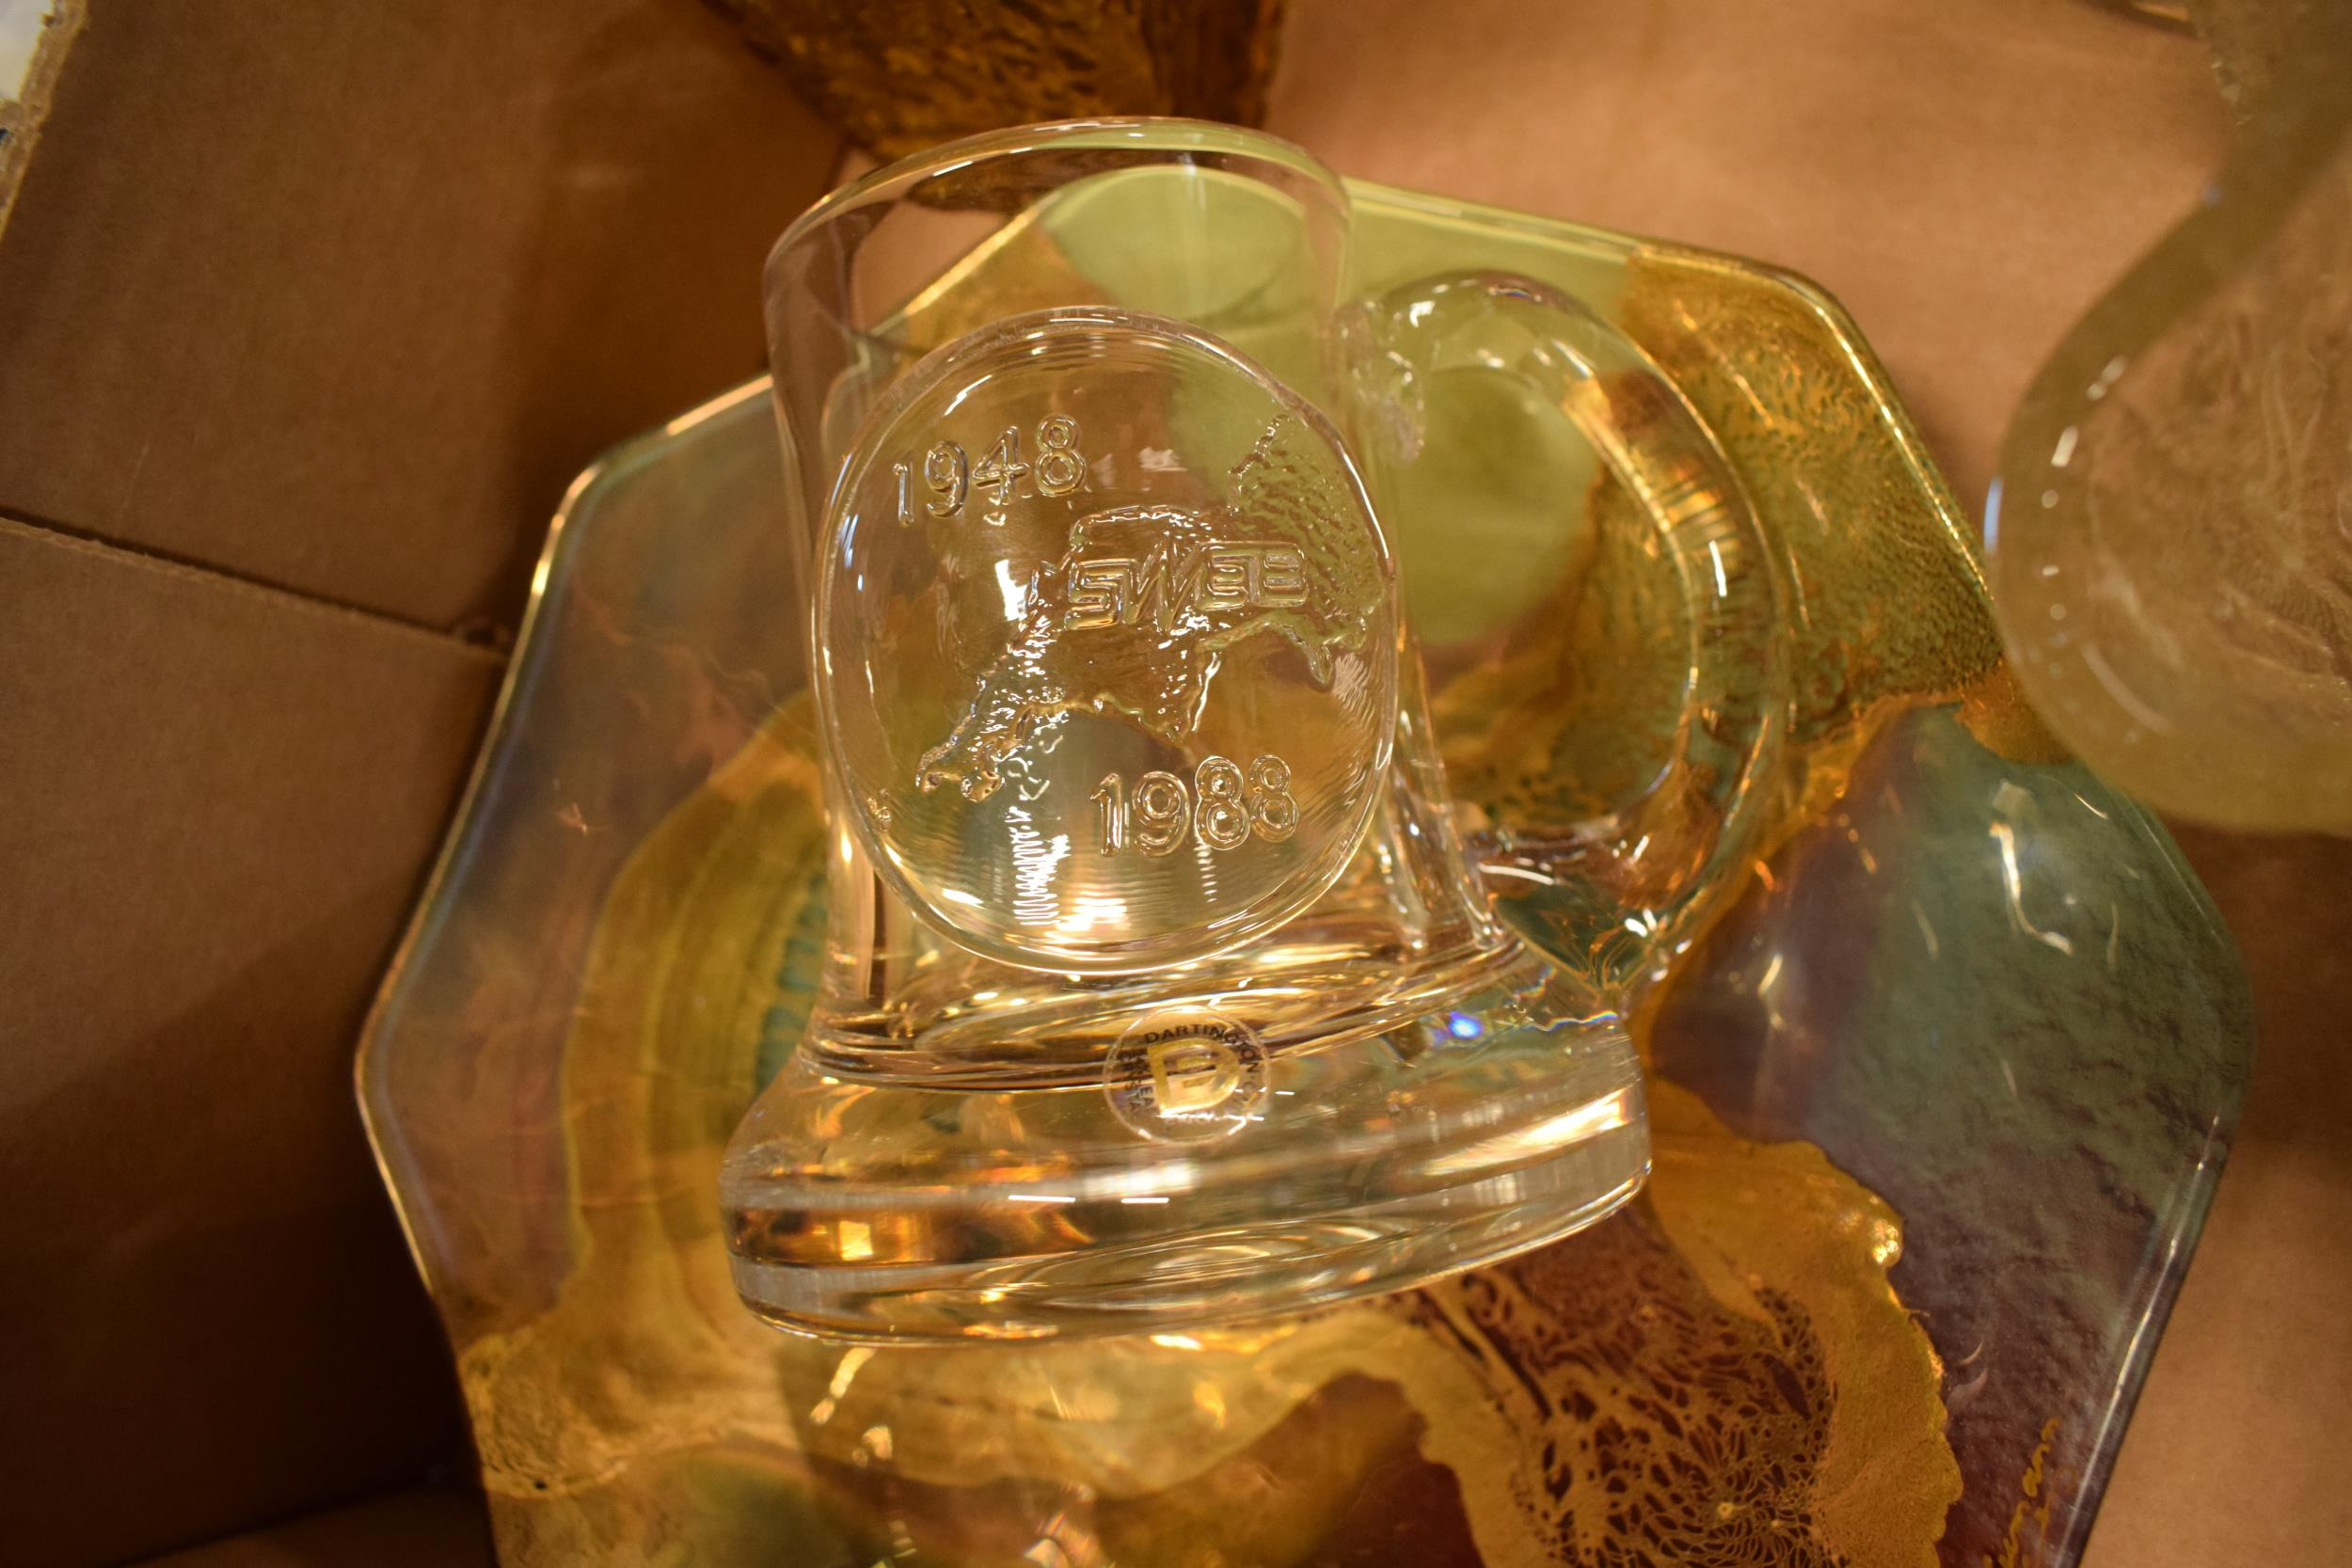 A collection of assorted art / studio glass in the form of a Dartington Crystal SWEB tankard, bowls, - Image 4 of 4